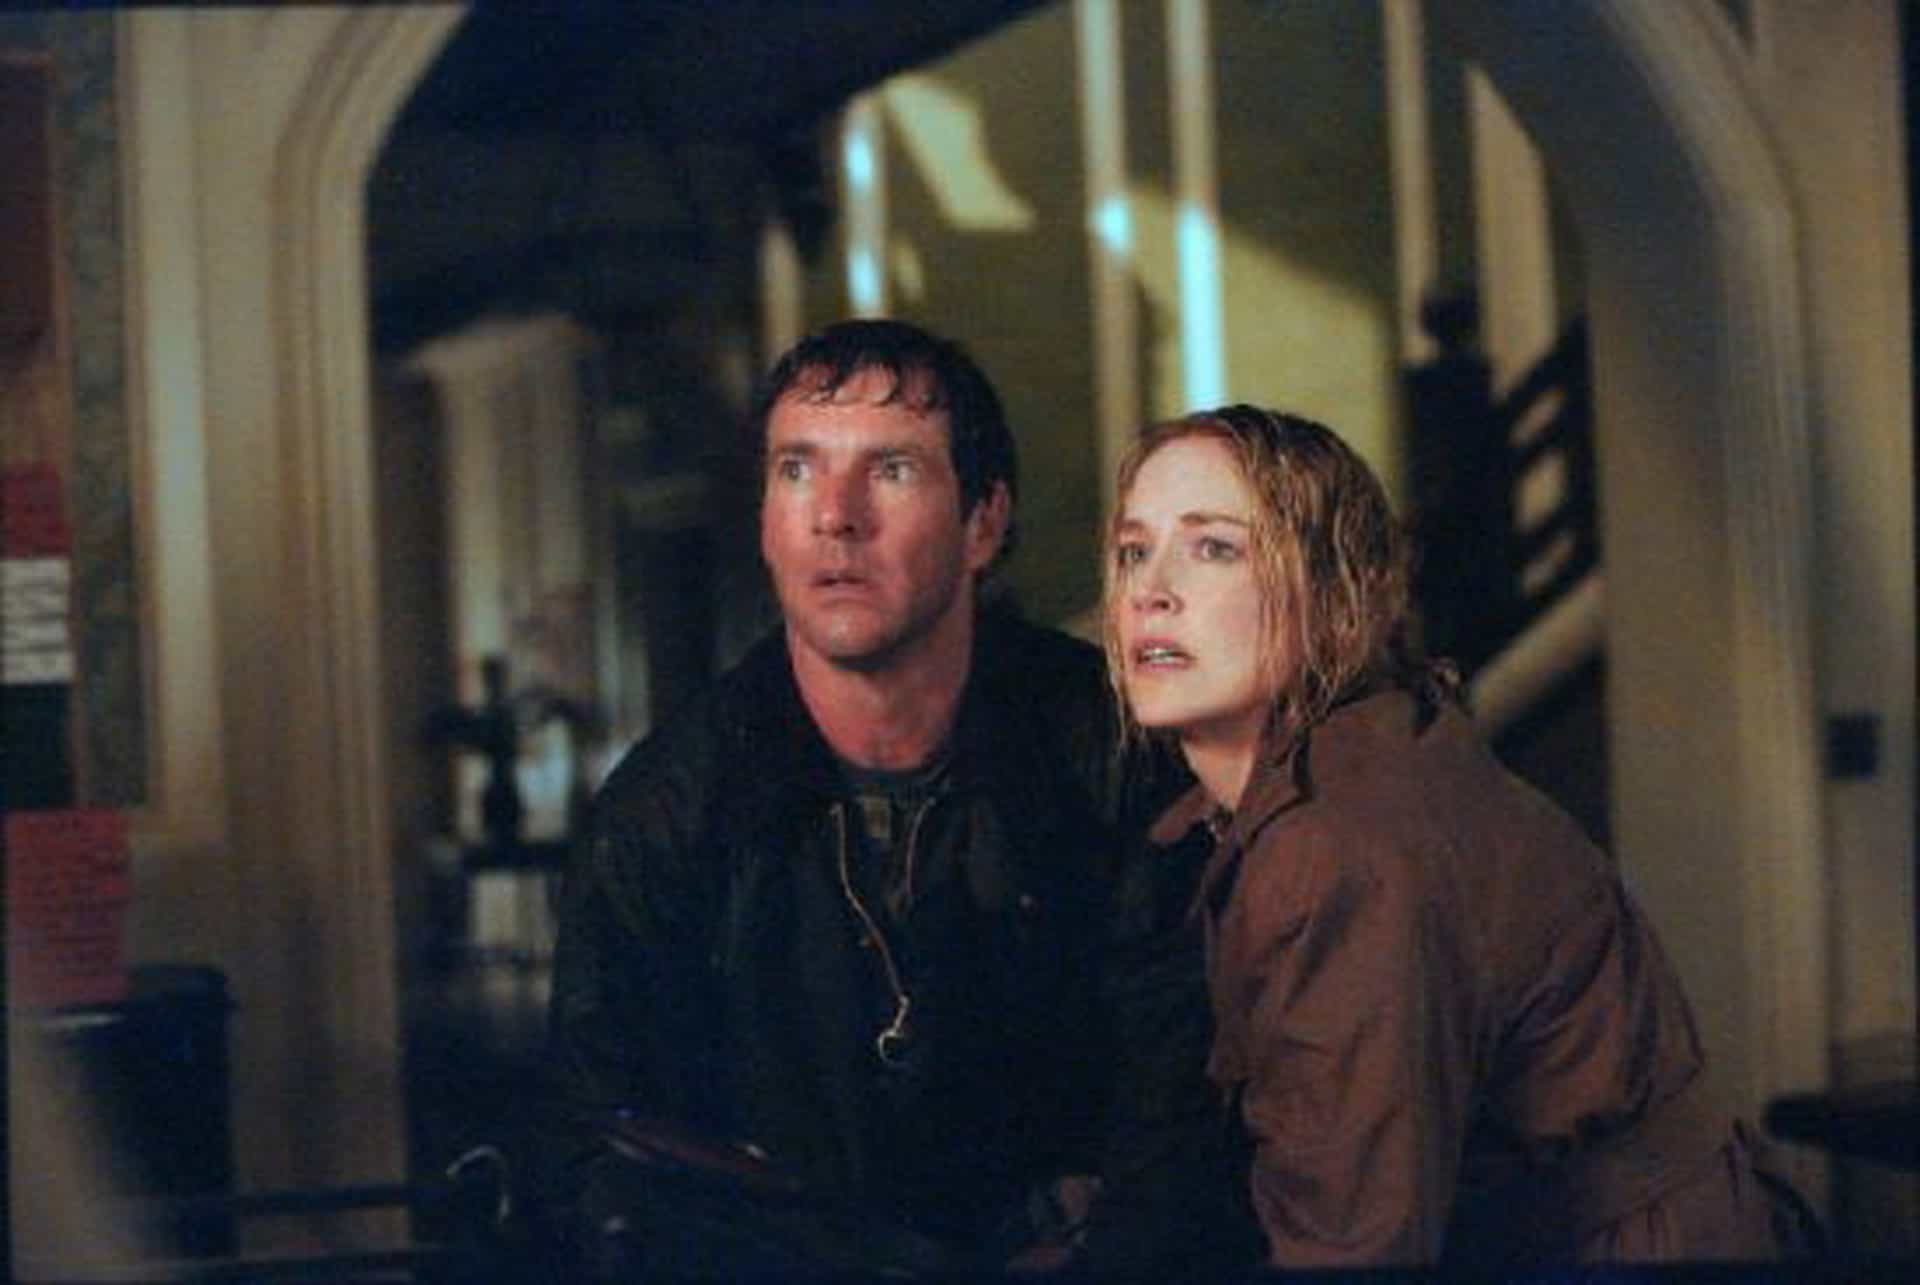 Husband and wife Dennis Quaid and Sharon Stone in Cold Creek Manor (2003)